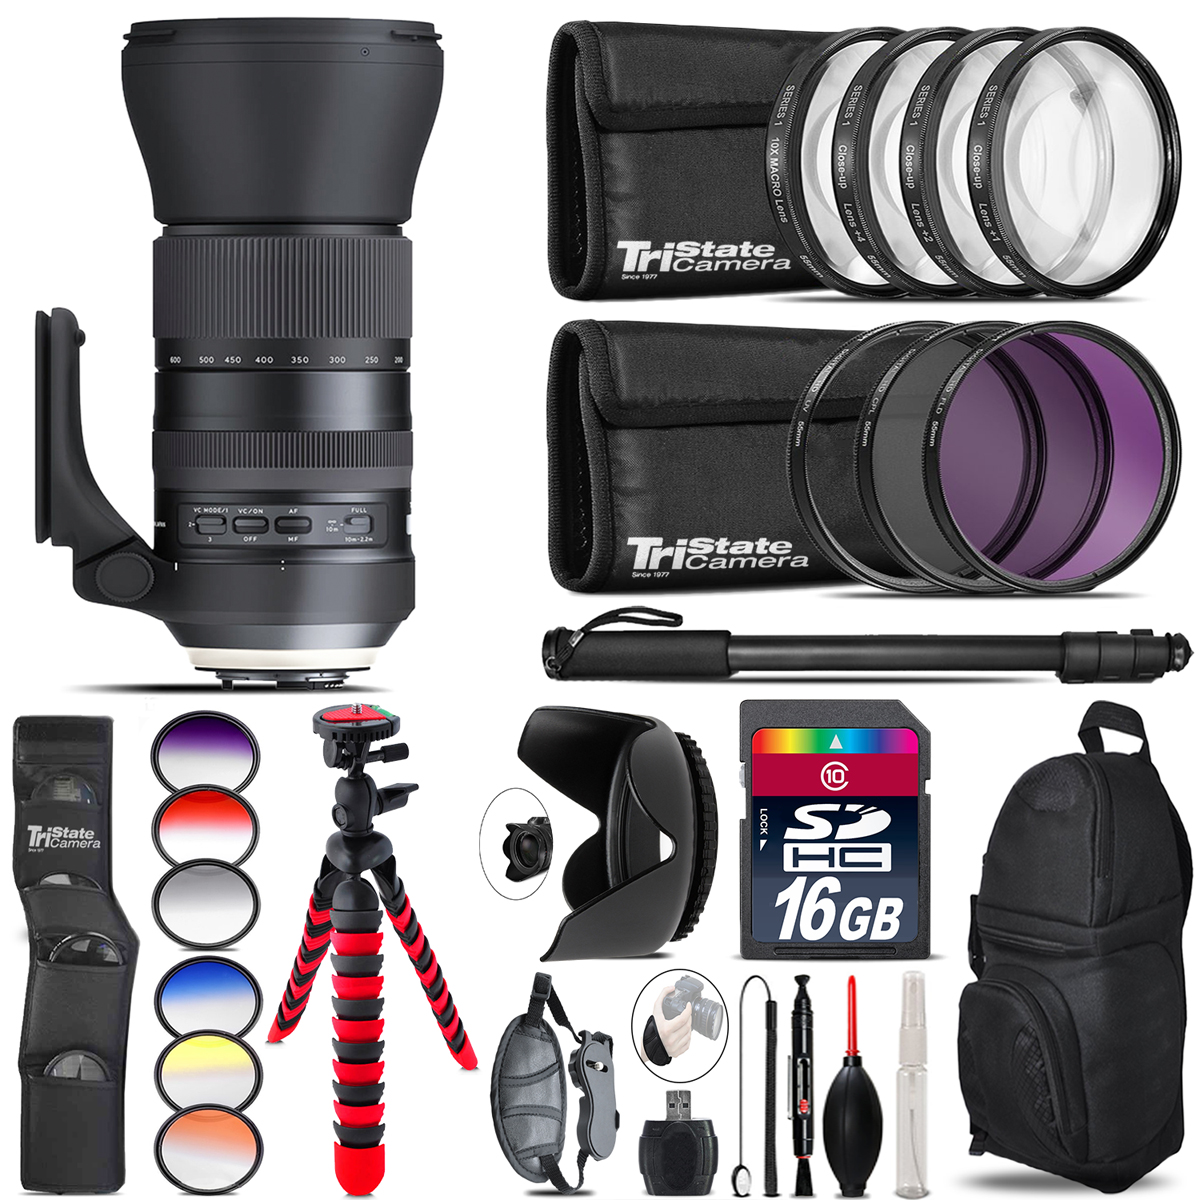 Tamron 150-600mm G2 for Nikon + Graduated Color Filter - 16GB Accessory Kit *FREE SHIPPING*